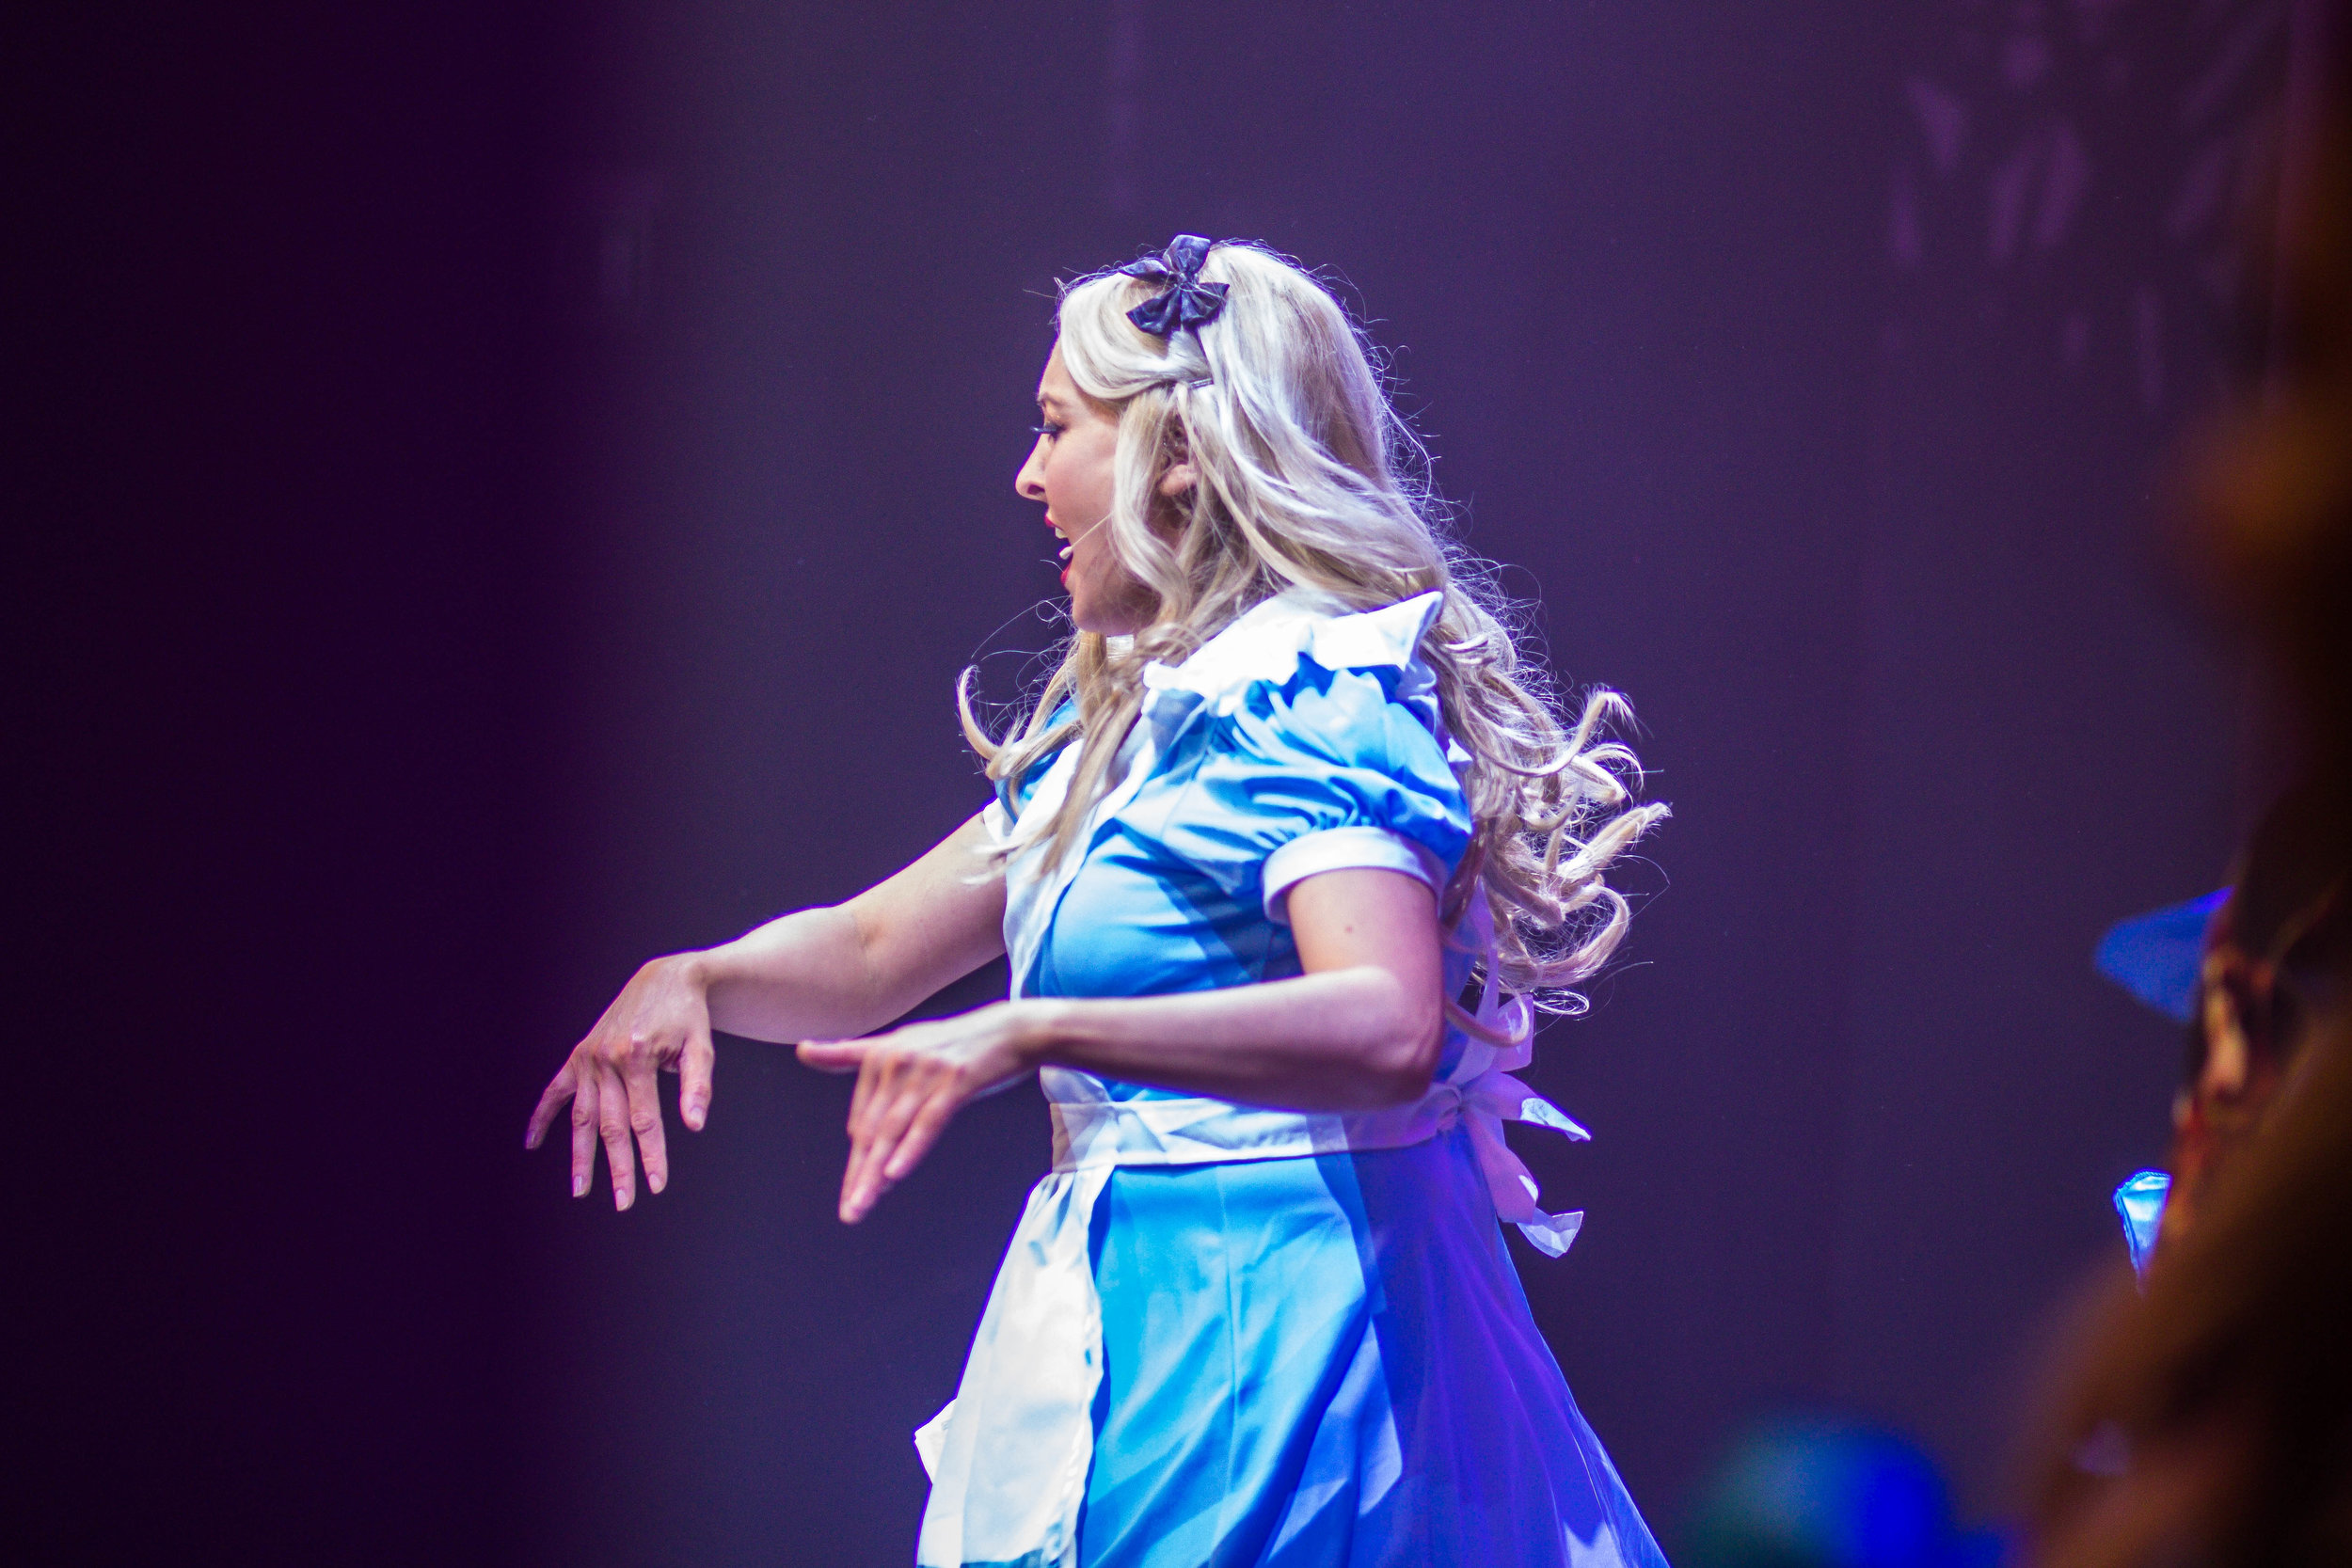 Alice_In_Wonderland_Panto-7346.jpg